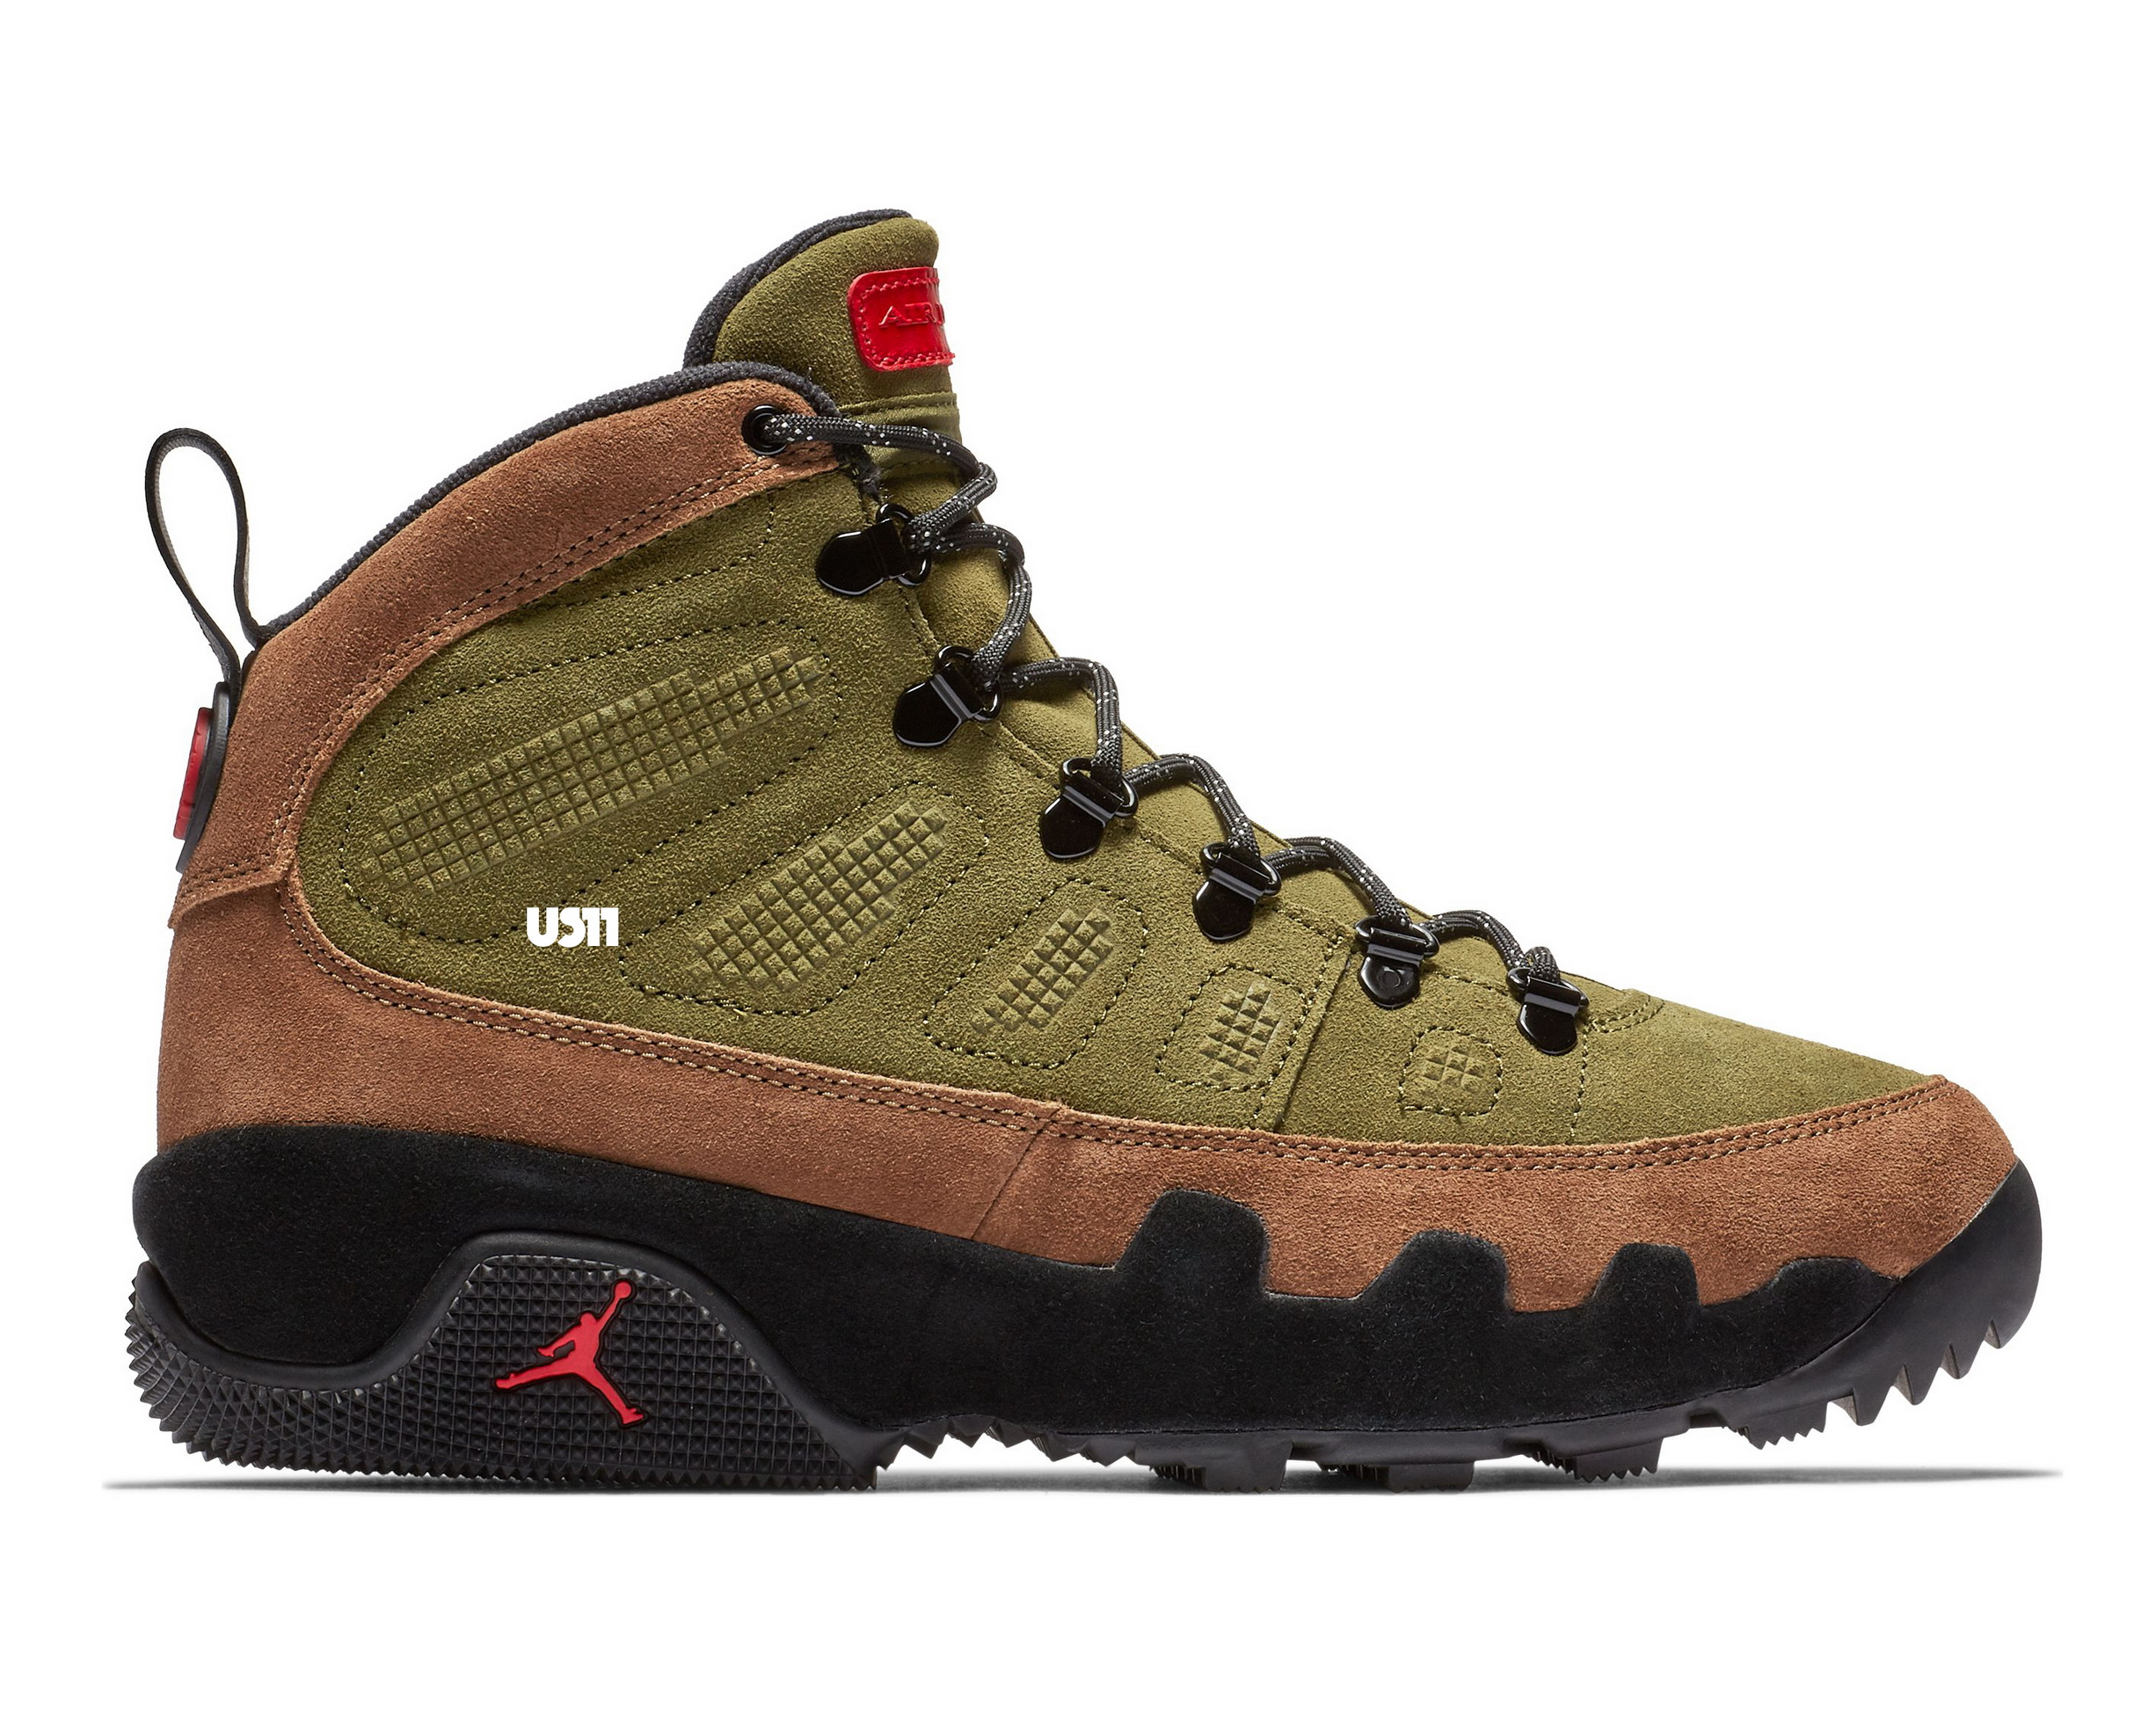 first rate 1b8e4 00c8b Prep for Winter with the Air Jordan 9 Boot NRG 'Olive ...